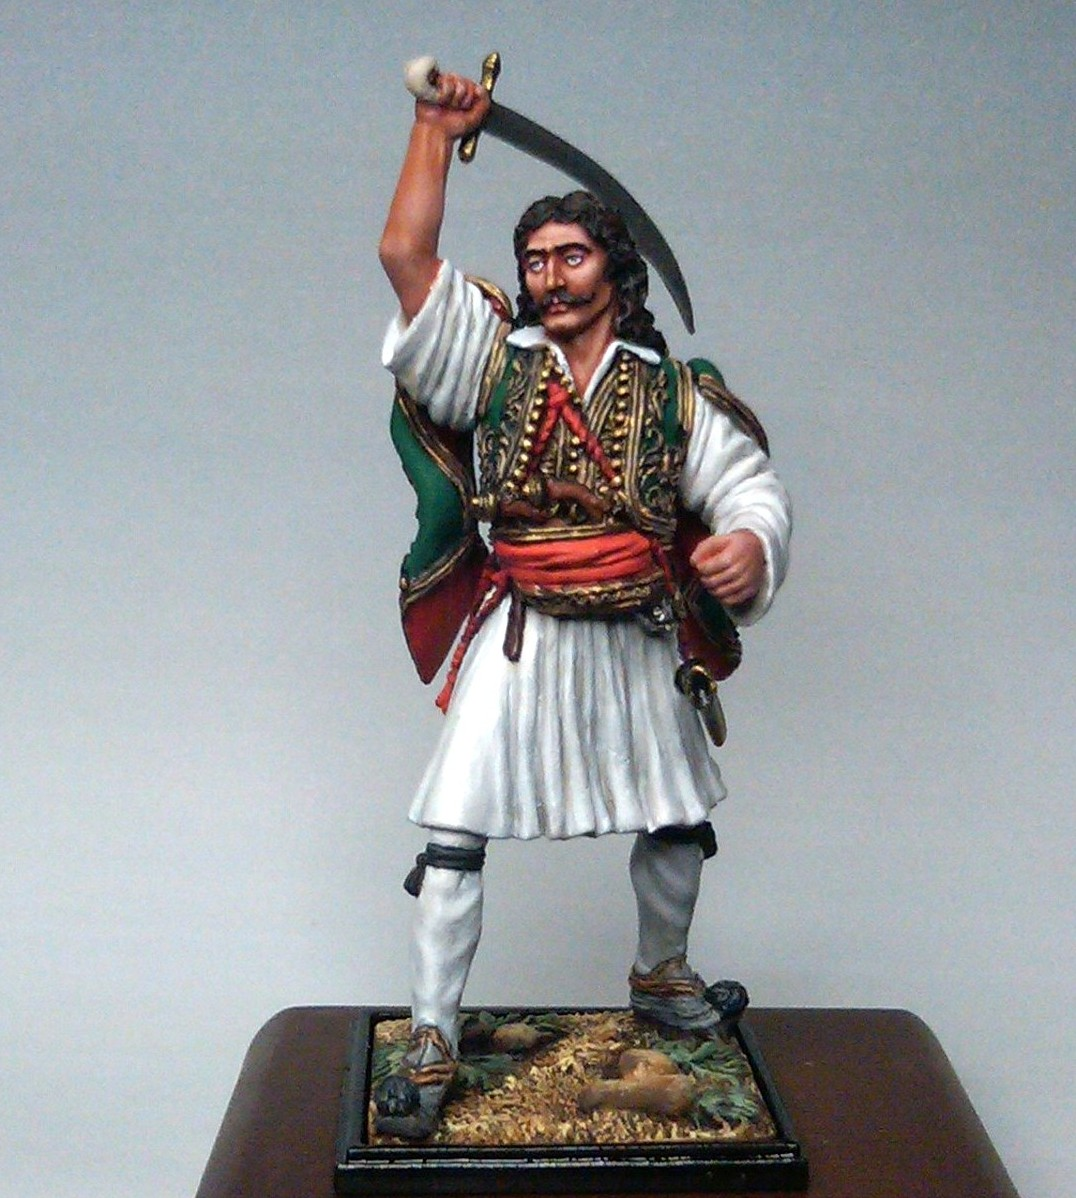 www.greekheroes.gr/miniatures-figures/54mm/Greek-revolution-1821-athanasios-diakos/